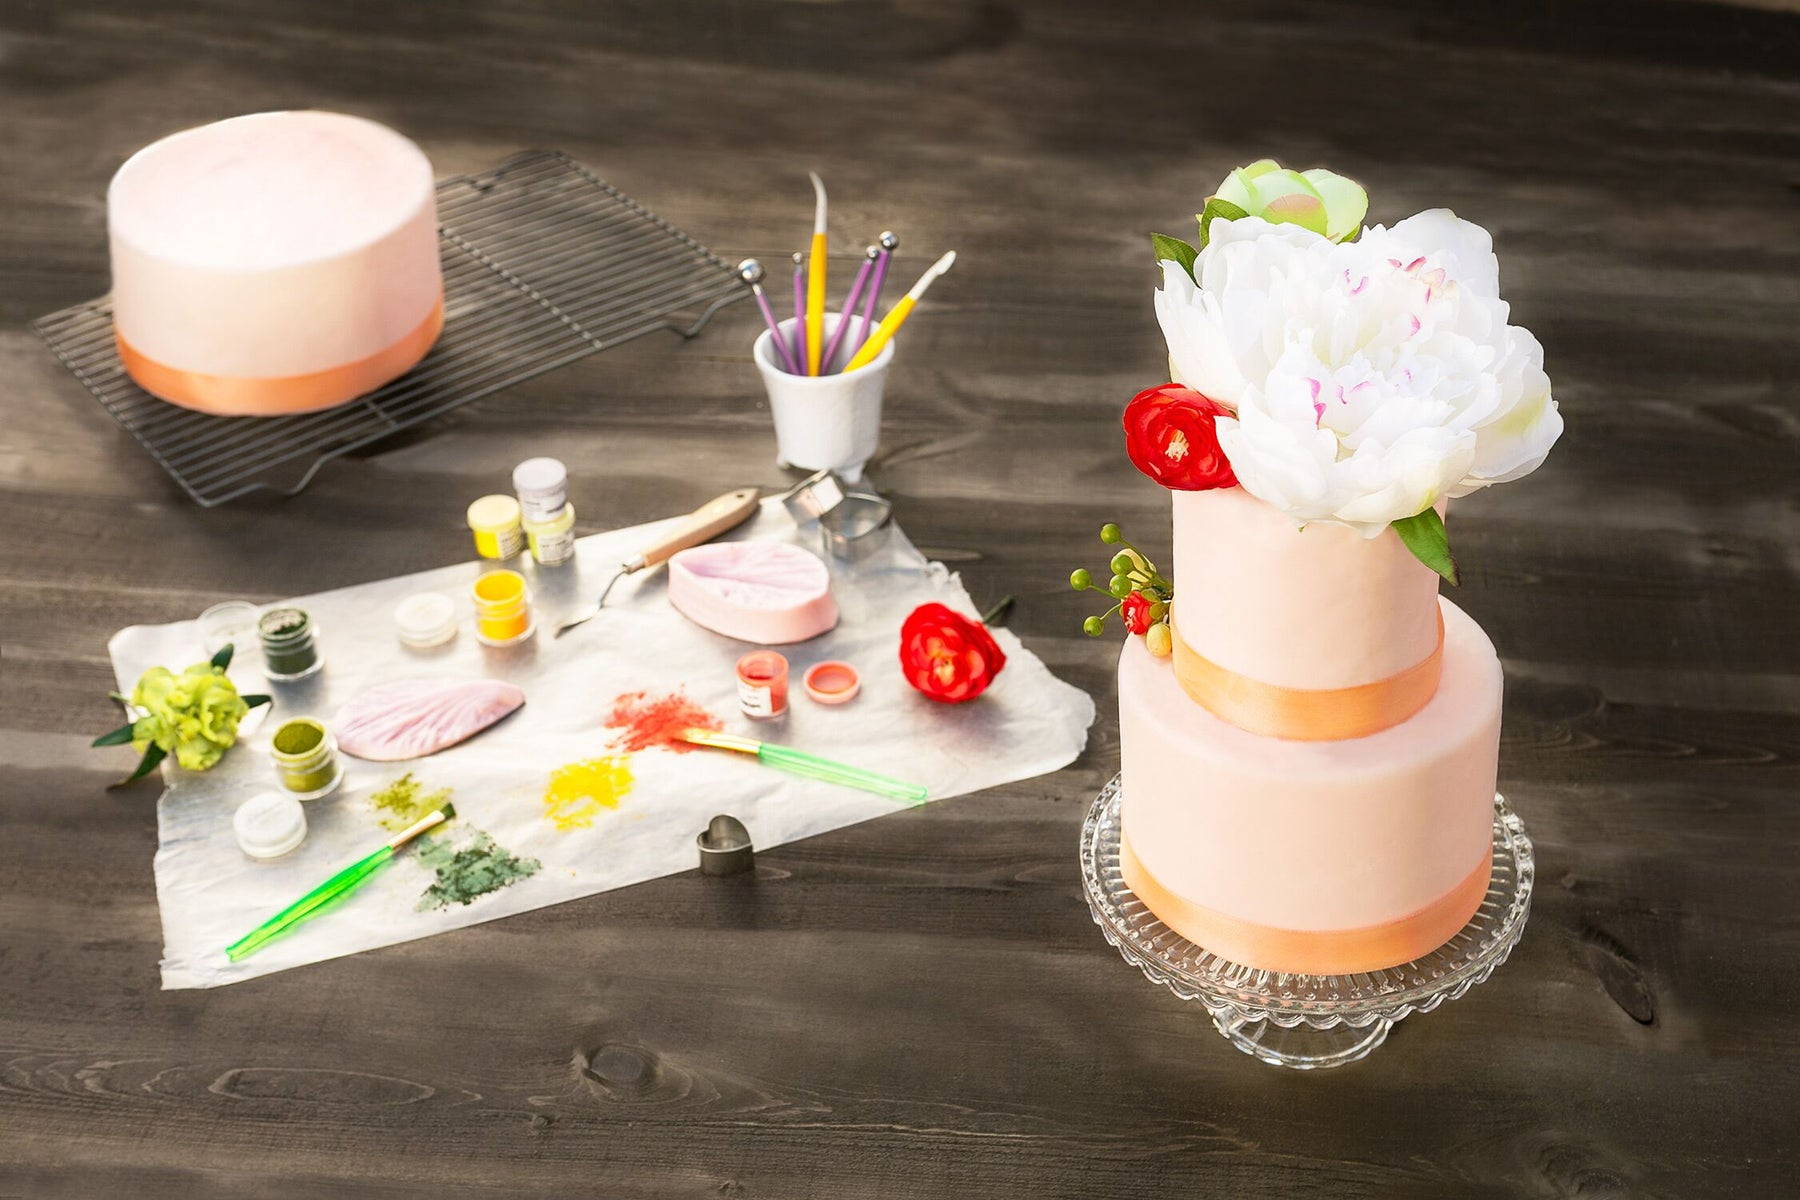 Deliciae floral decorated cakes